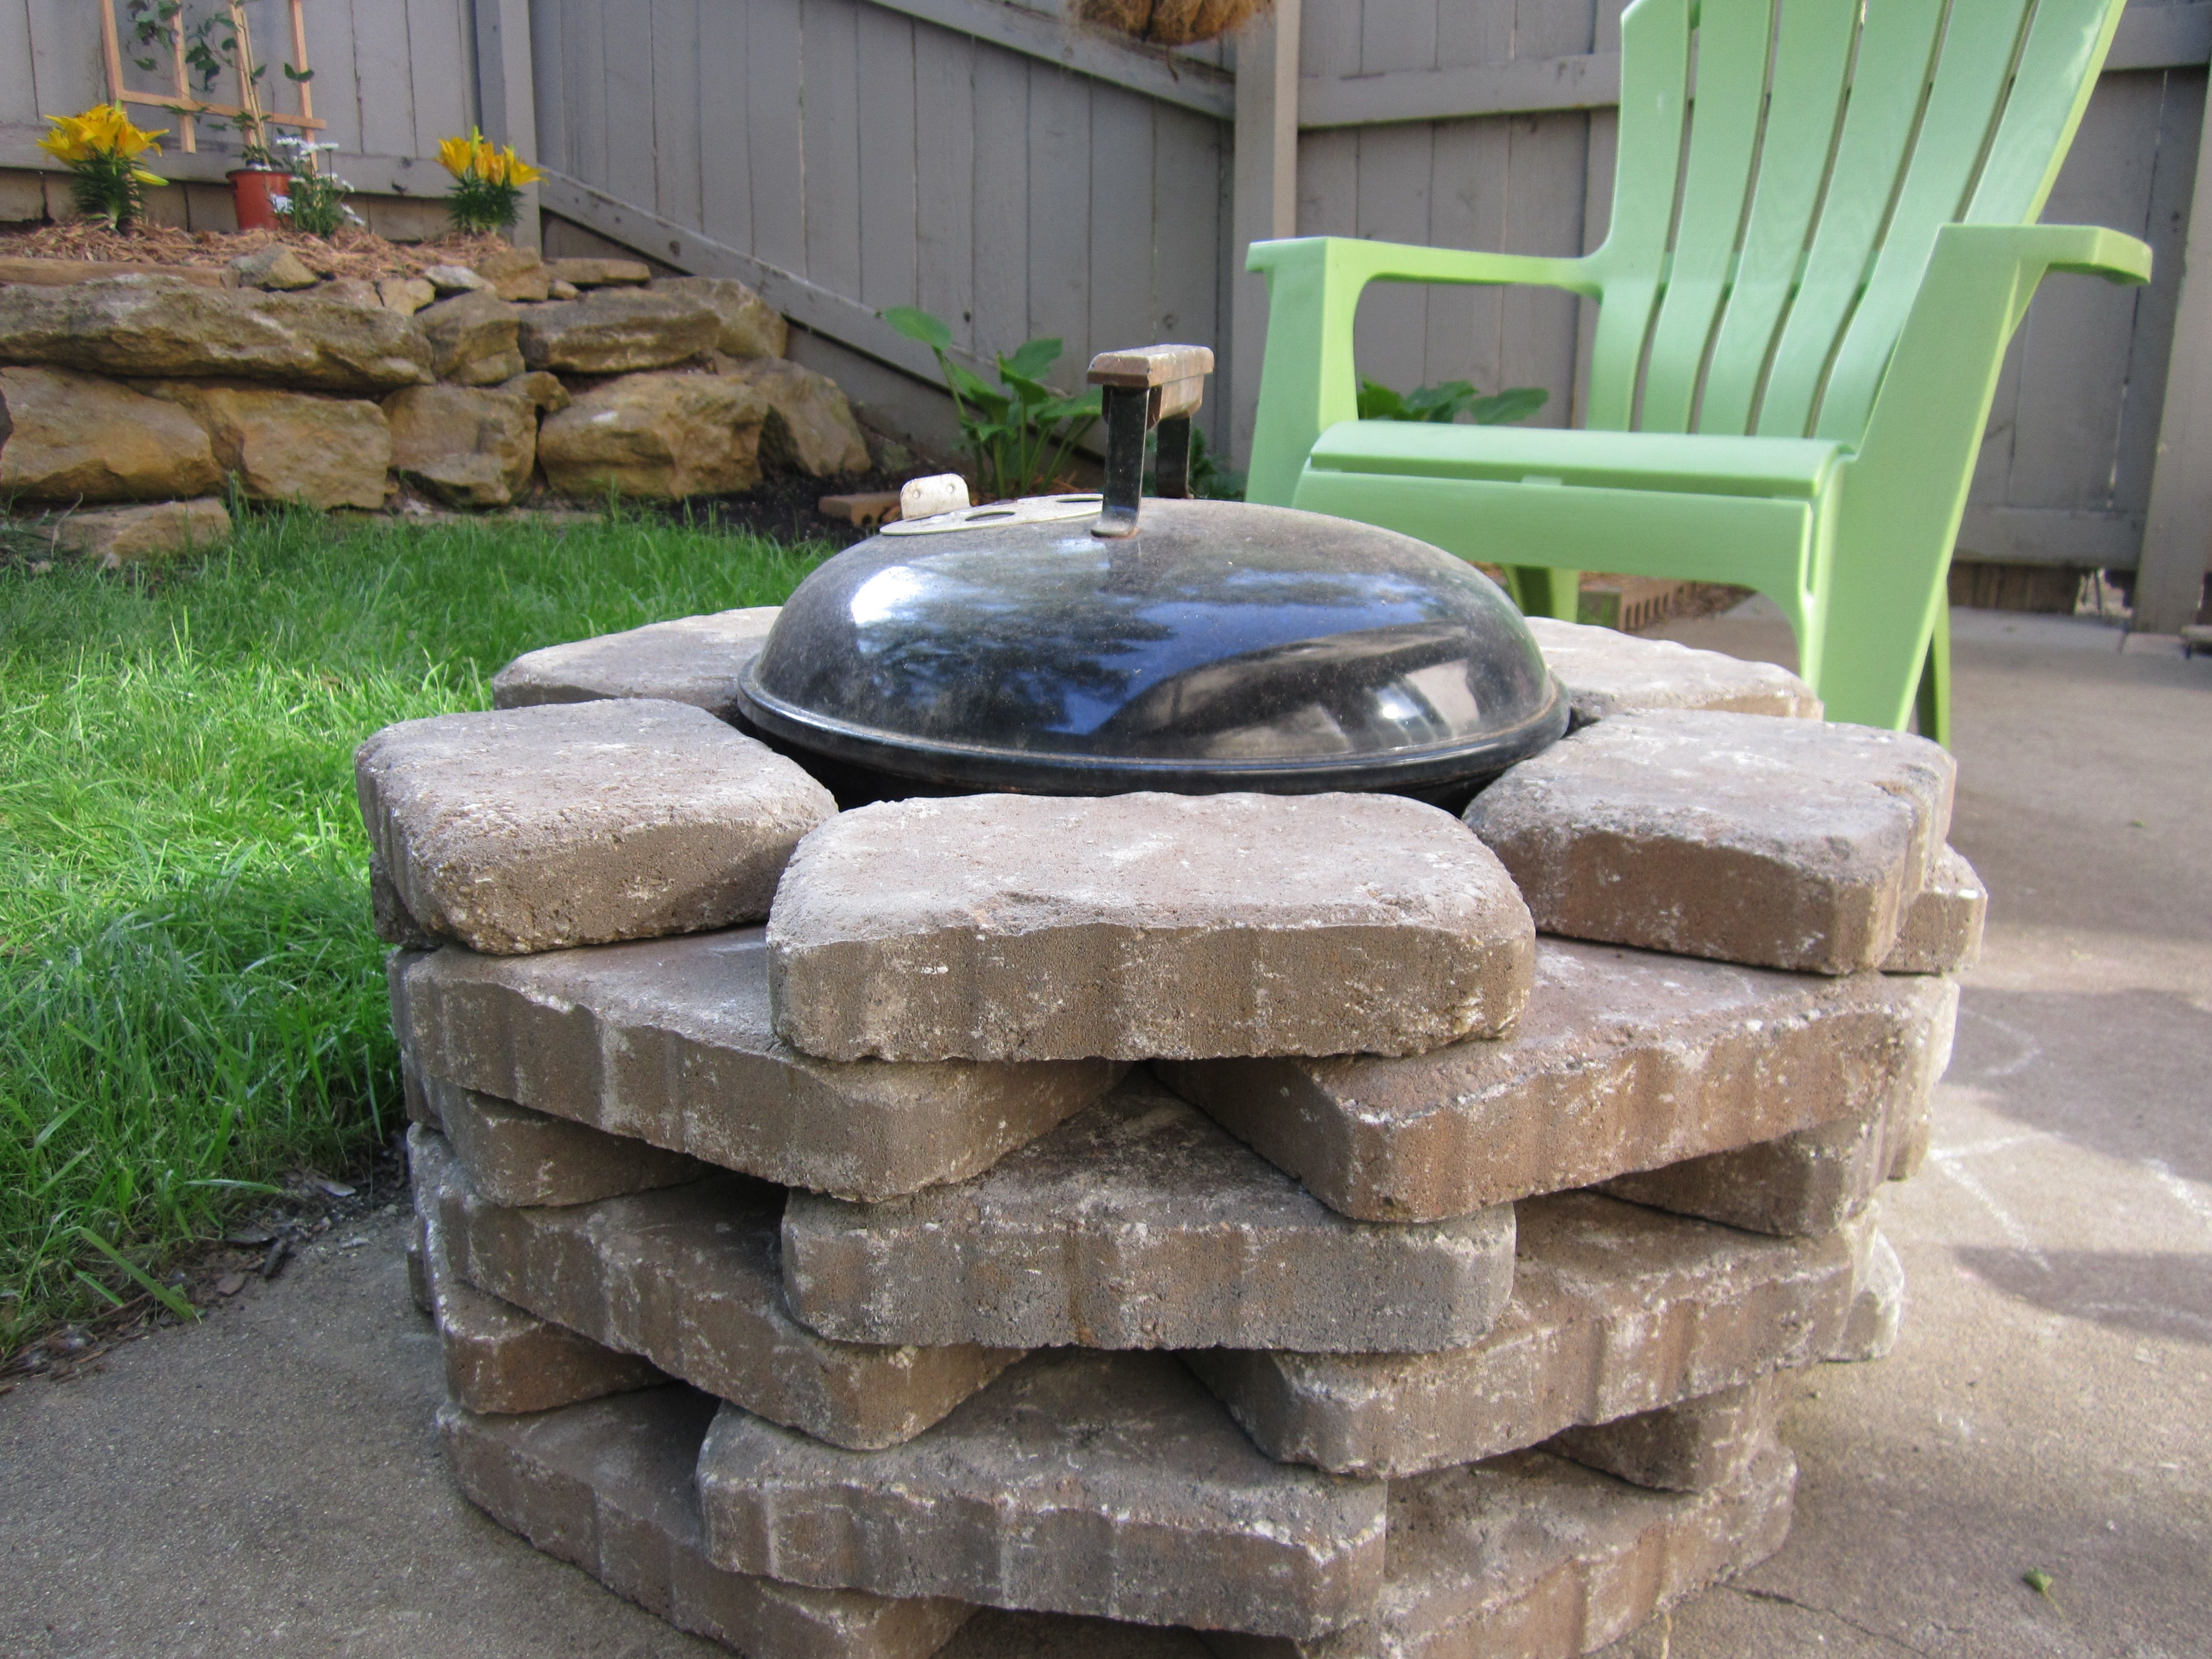 diy fire pit we placed stone around our simple weber grill to create